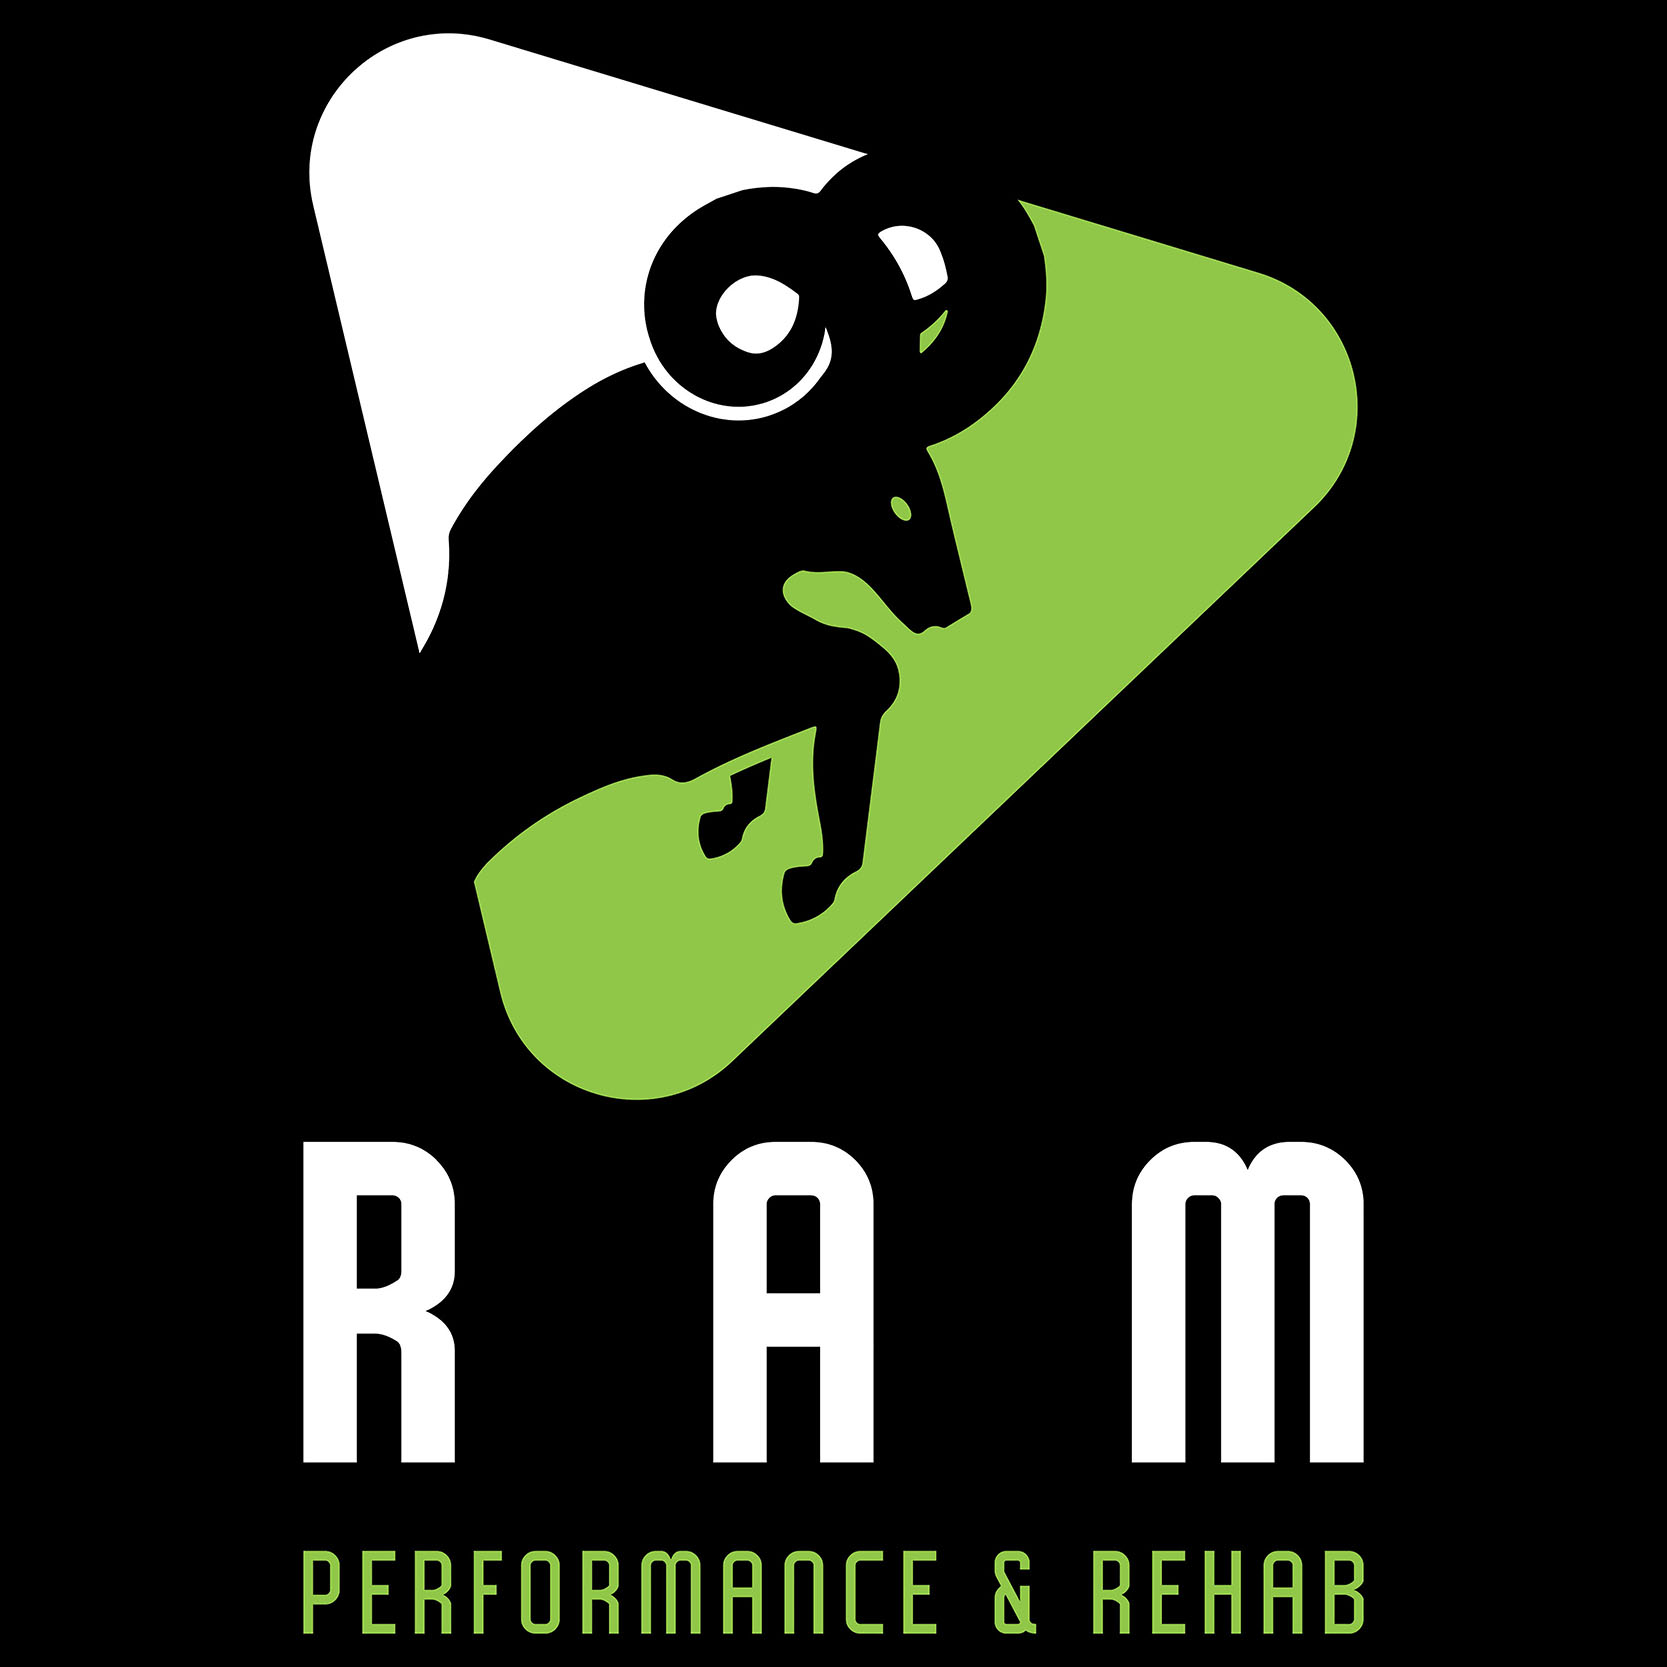 RAM Performance and Rehab